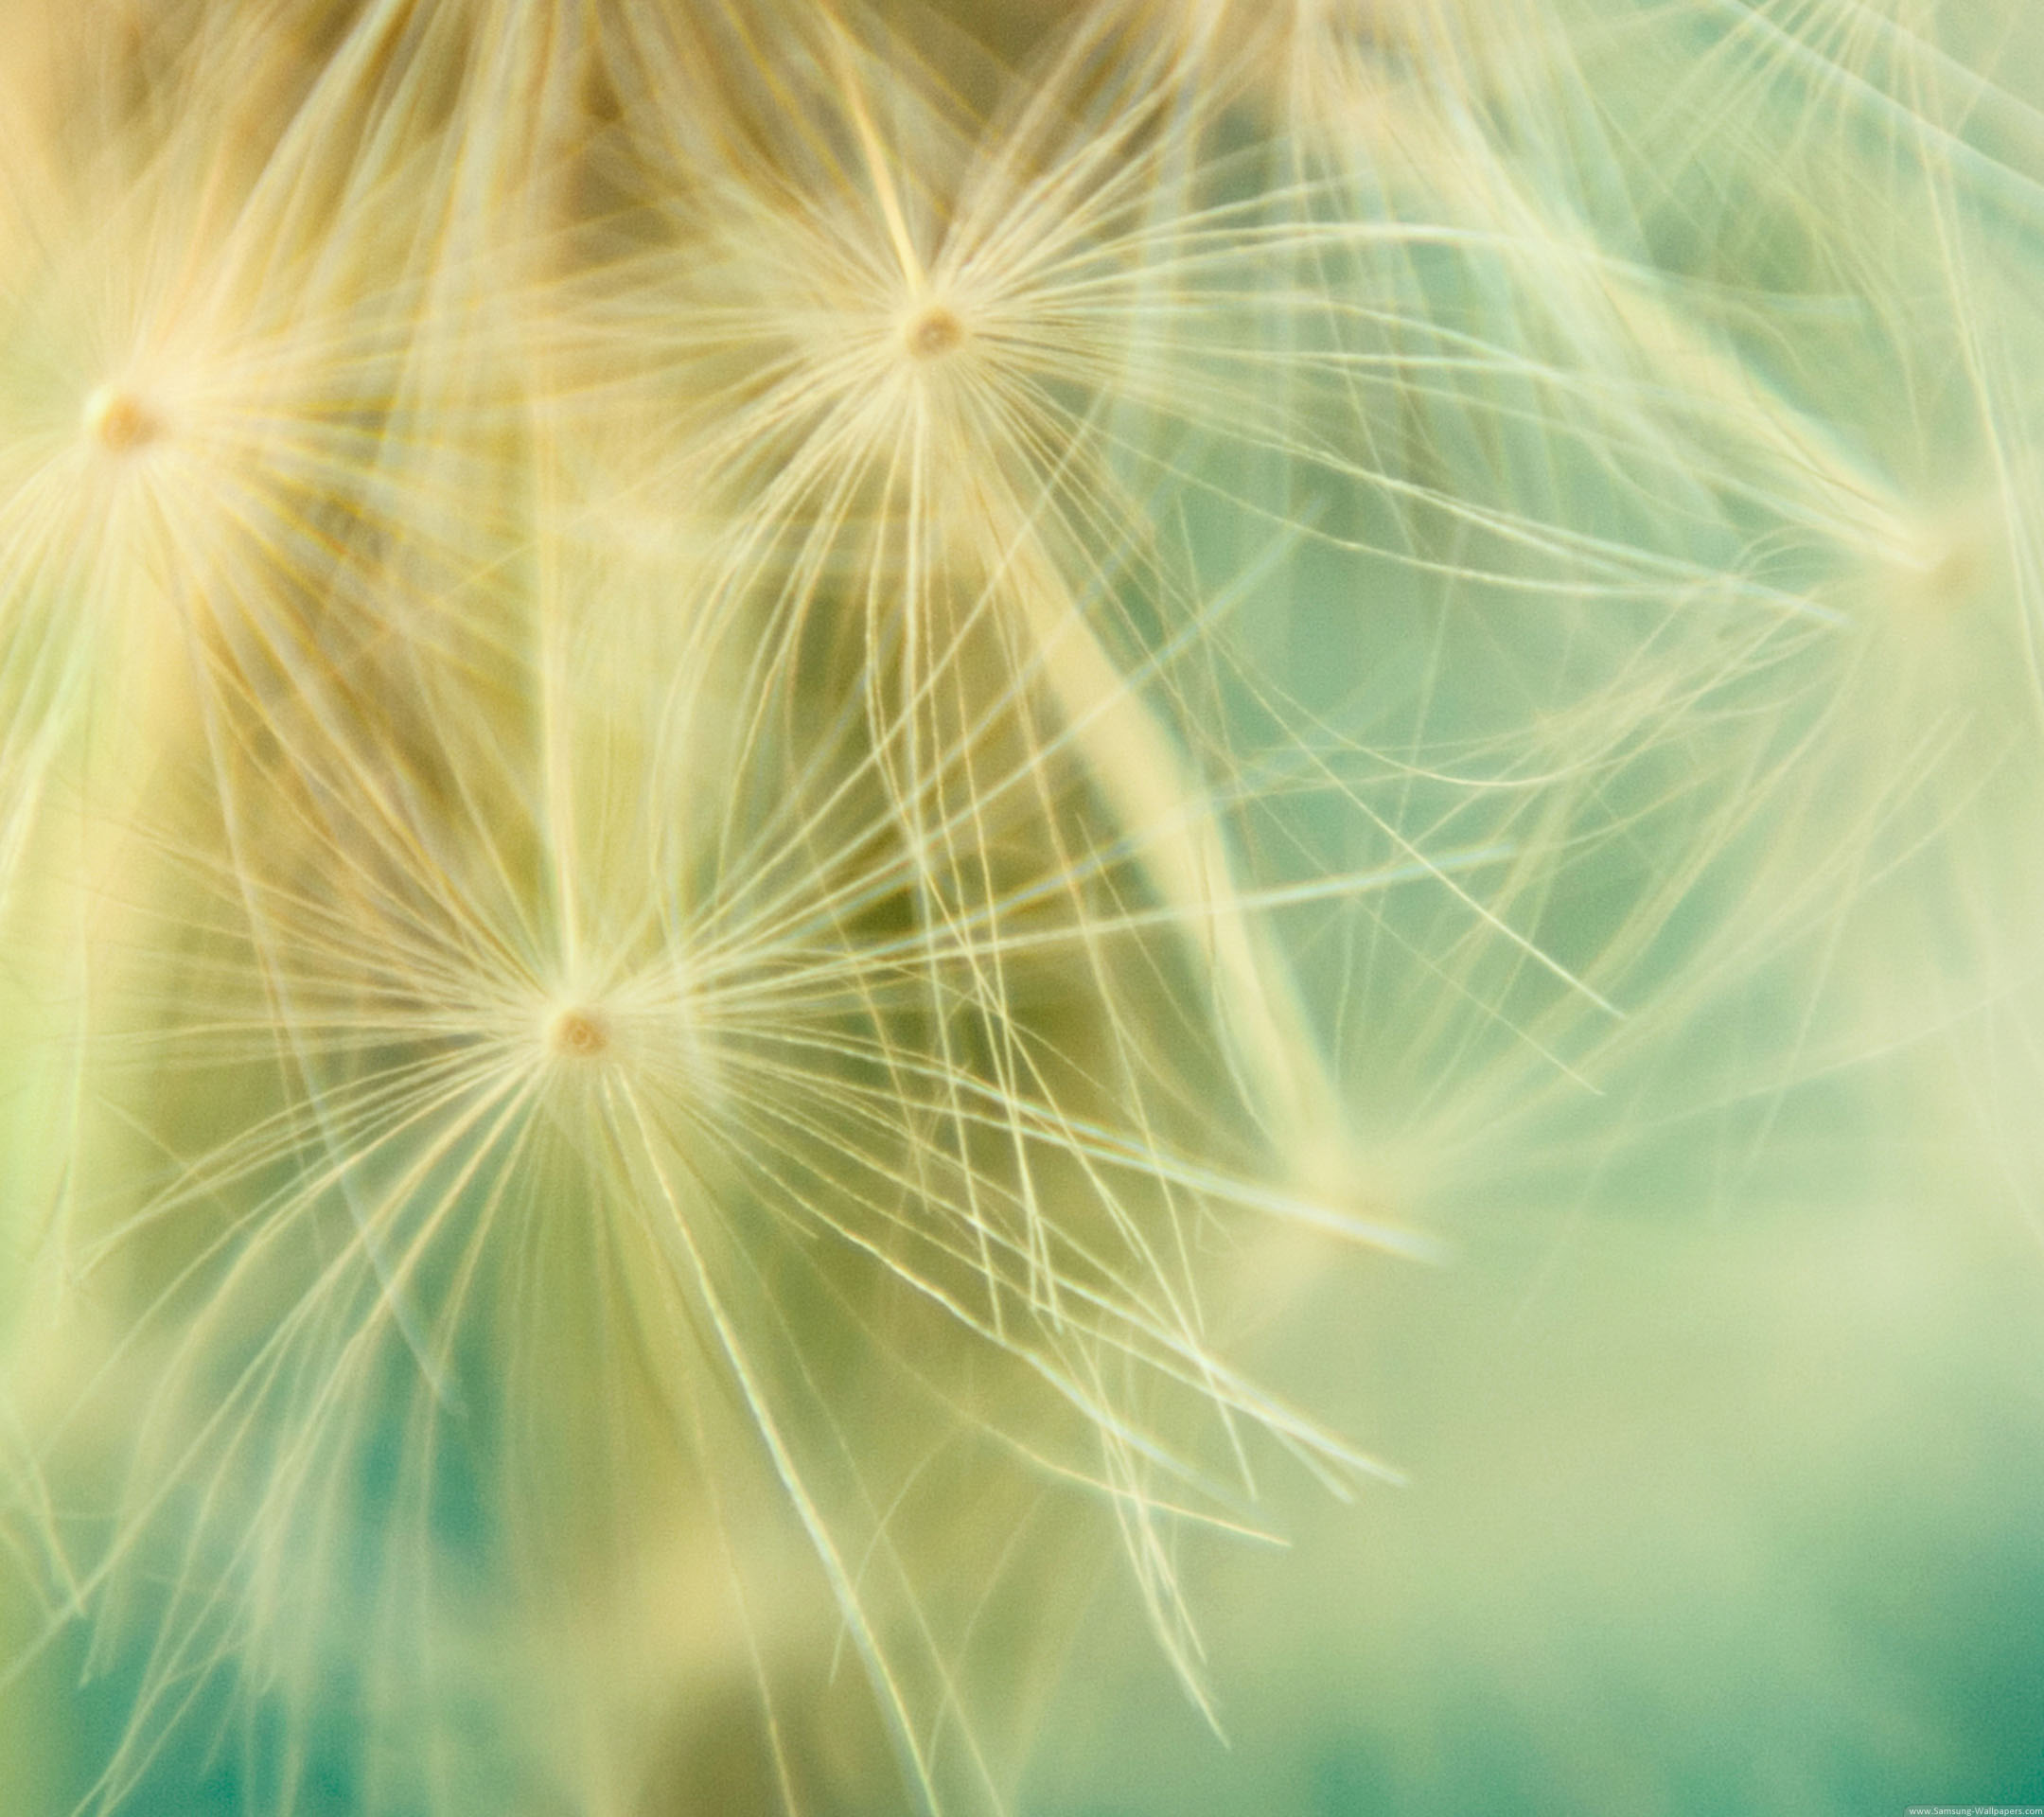 Dandelion Backgrounds Lock Screen 2160x1920 Samsung Galaxy S4 2160x1920